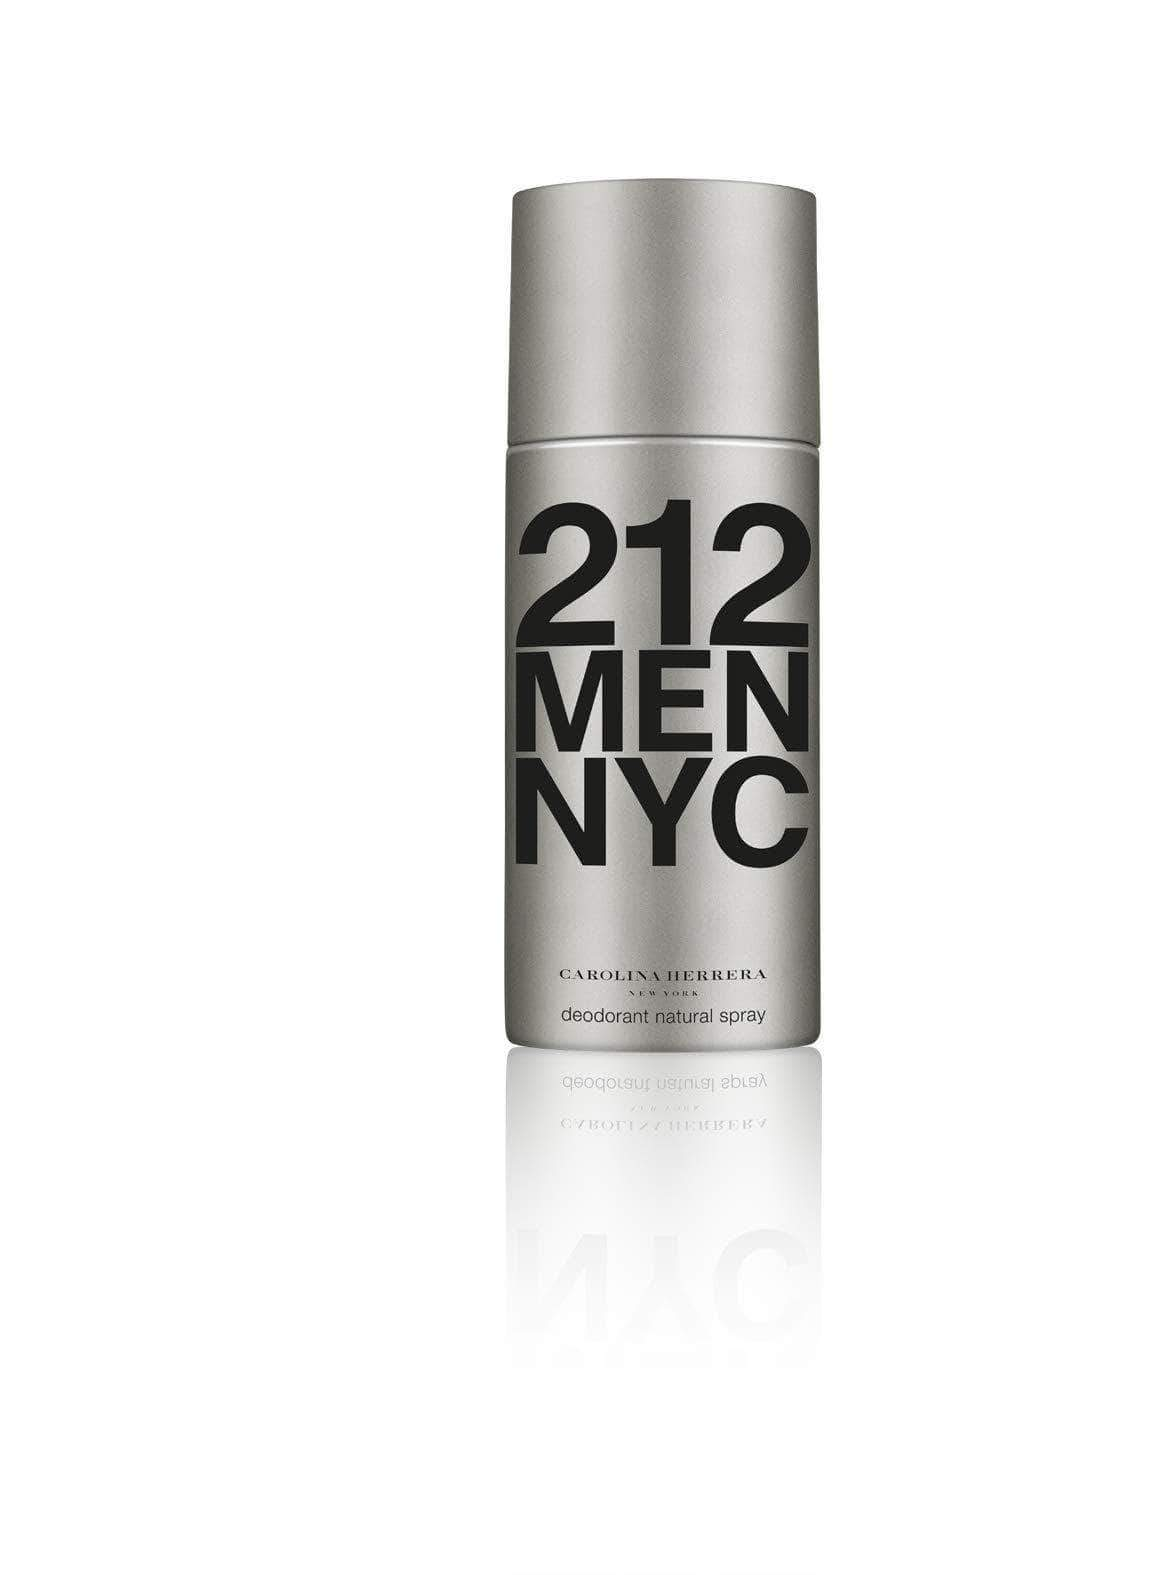 Amazon Carolina Herrera Homme, 212 Men NYC Deodorant Natural Spray, 150 g